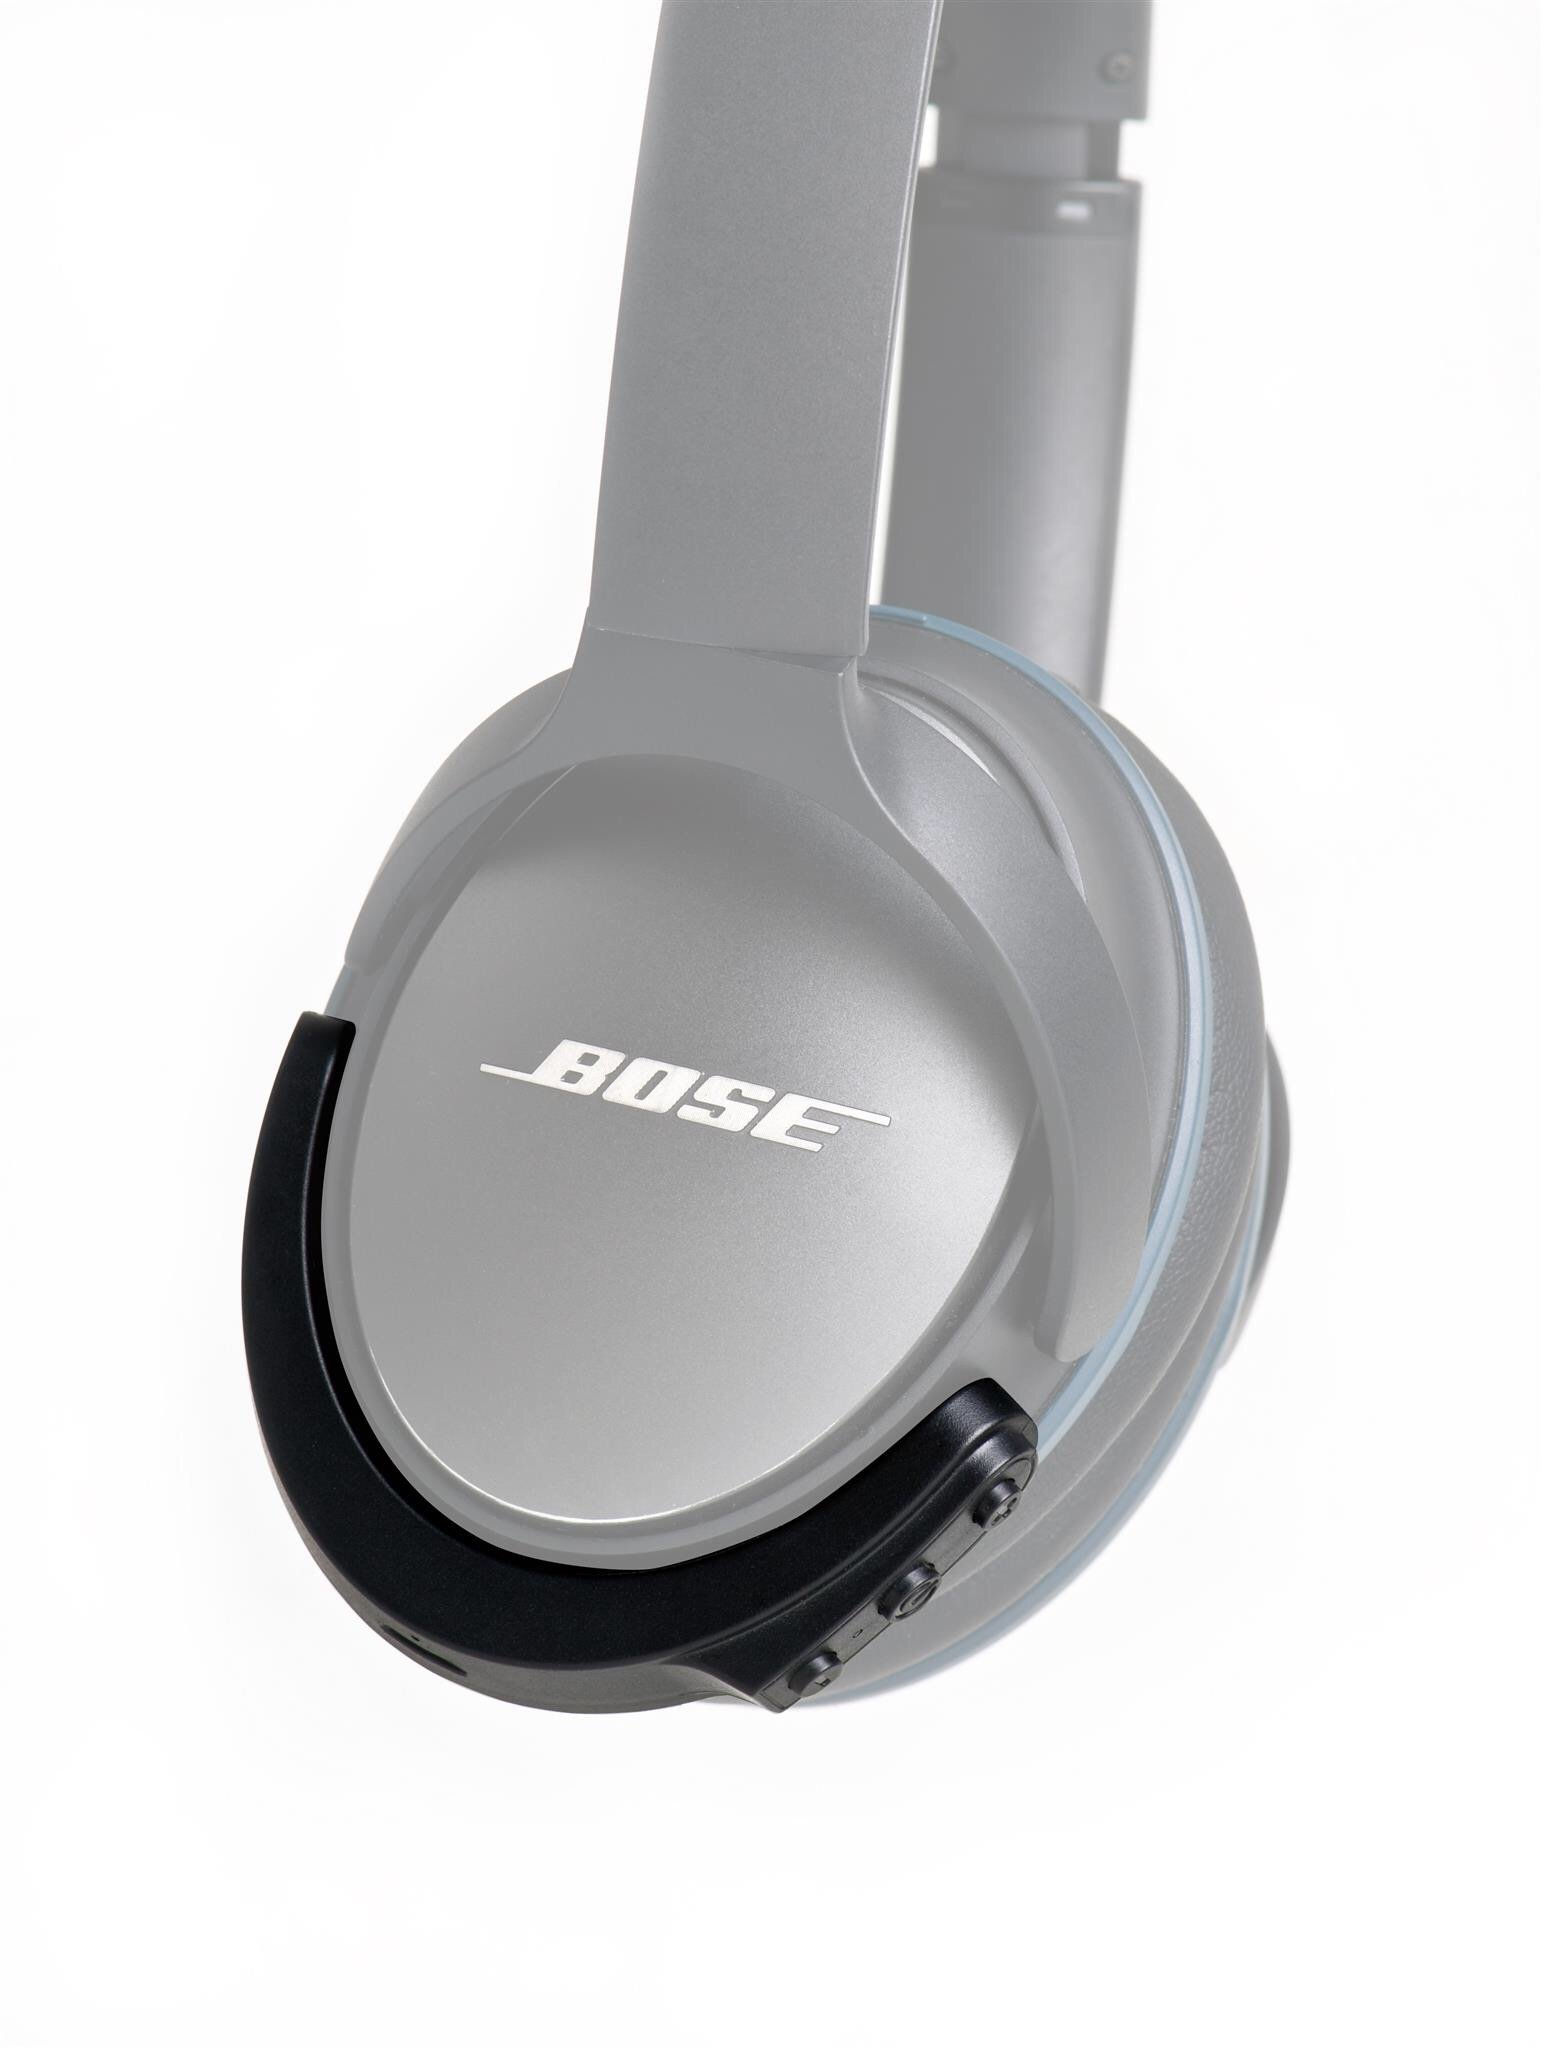 BTunes Wireless Bluetooth Adapter for Bose Quiet Comfort 25 Headphones (New for QC25) (Black)